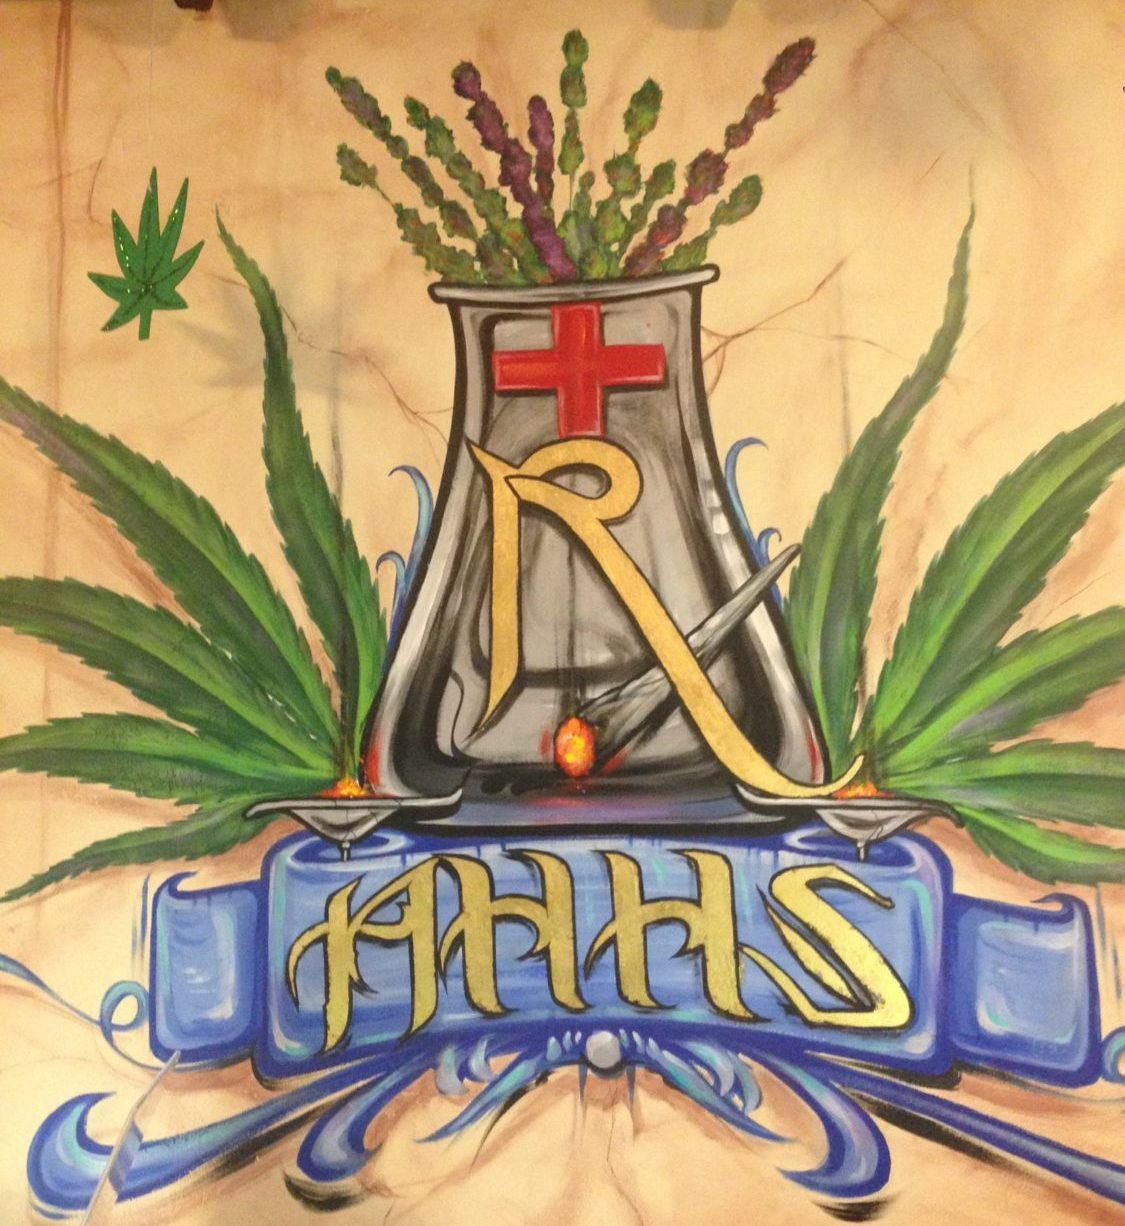 AHHS Celebrates 20 Years Serving Elite Cannabis to California - LA Weekly